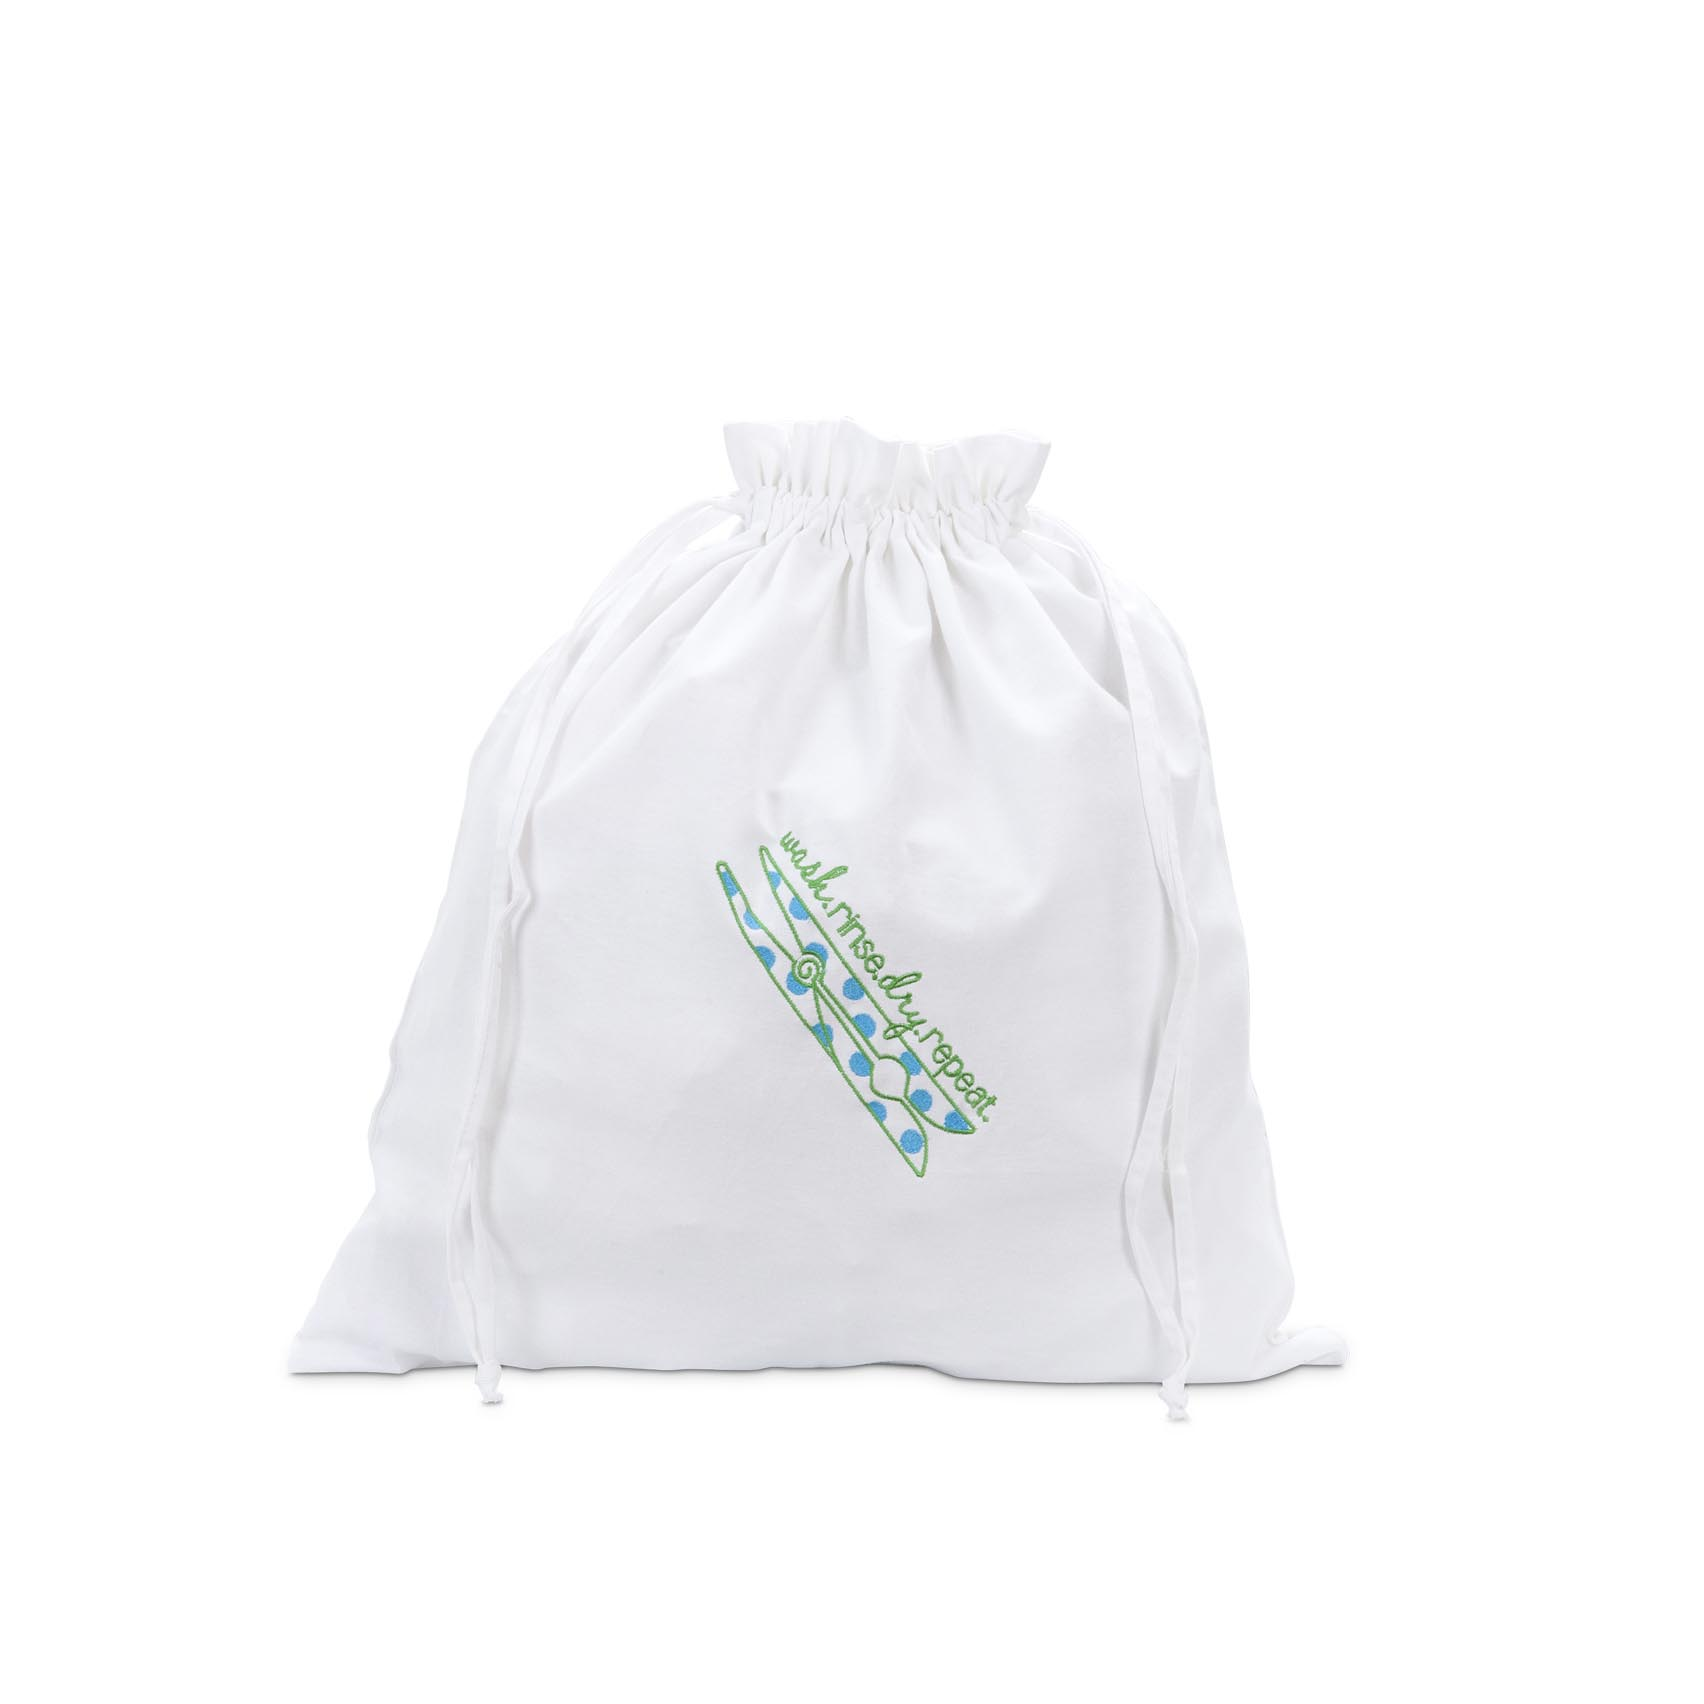 dirty laundry bag - wash, rinse, dry, repeat